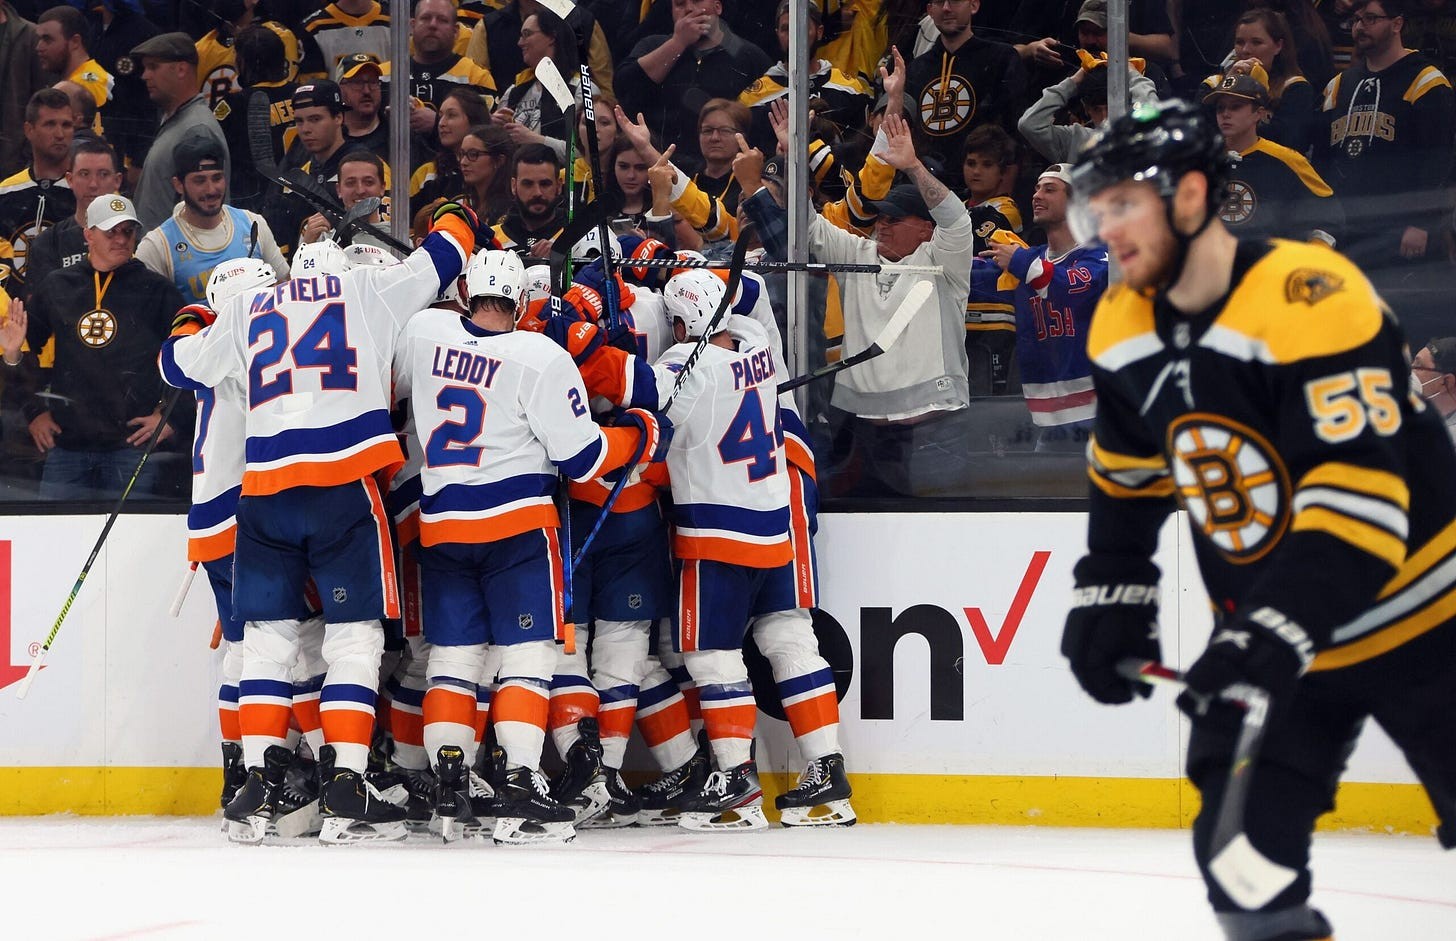 3 takeaways following the Bruins' Game 2 loss to the Islanders